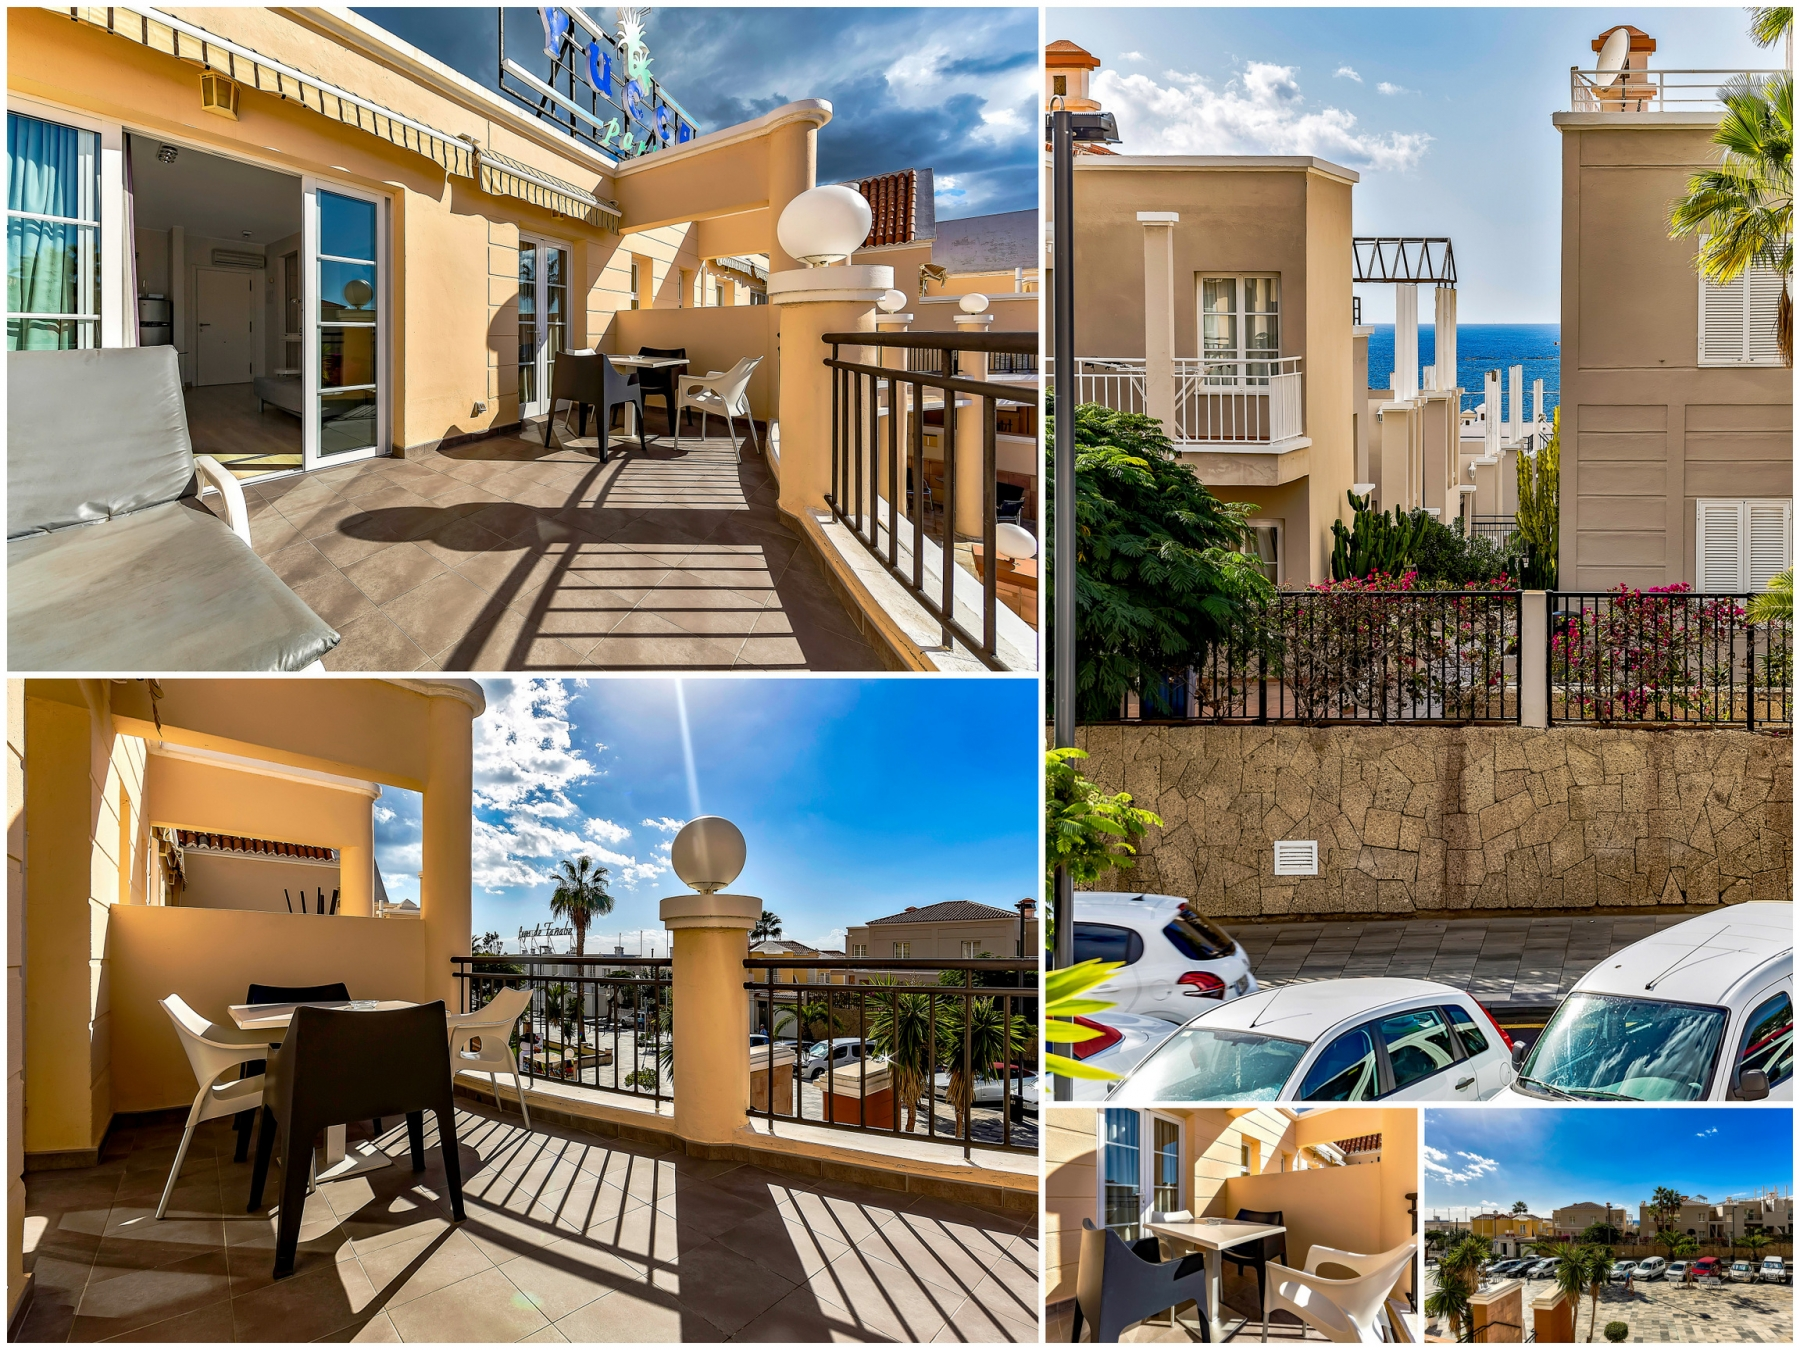 Properties for Sale in Tenerife, Canary Islands, Spain | SylkWayStar Real Estate. 1 bedroom apartment Yucca Park. Image-22559